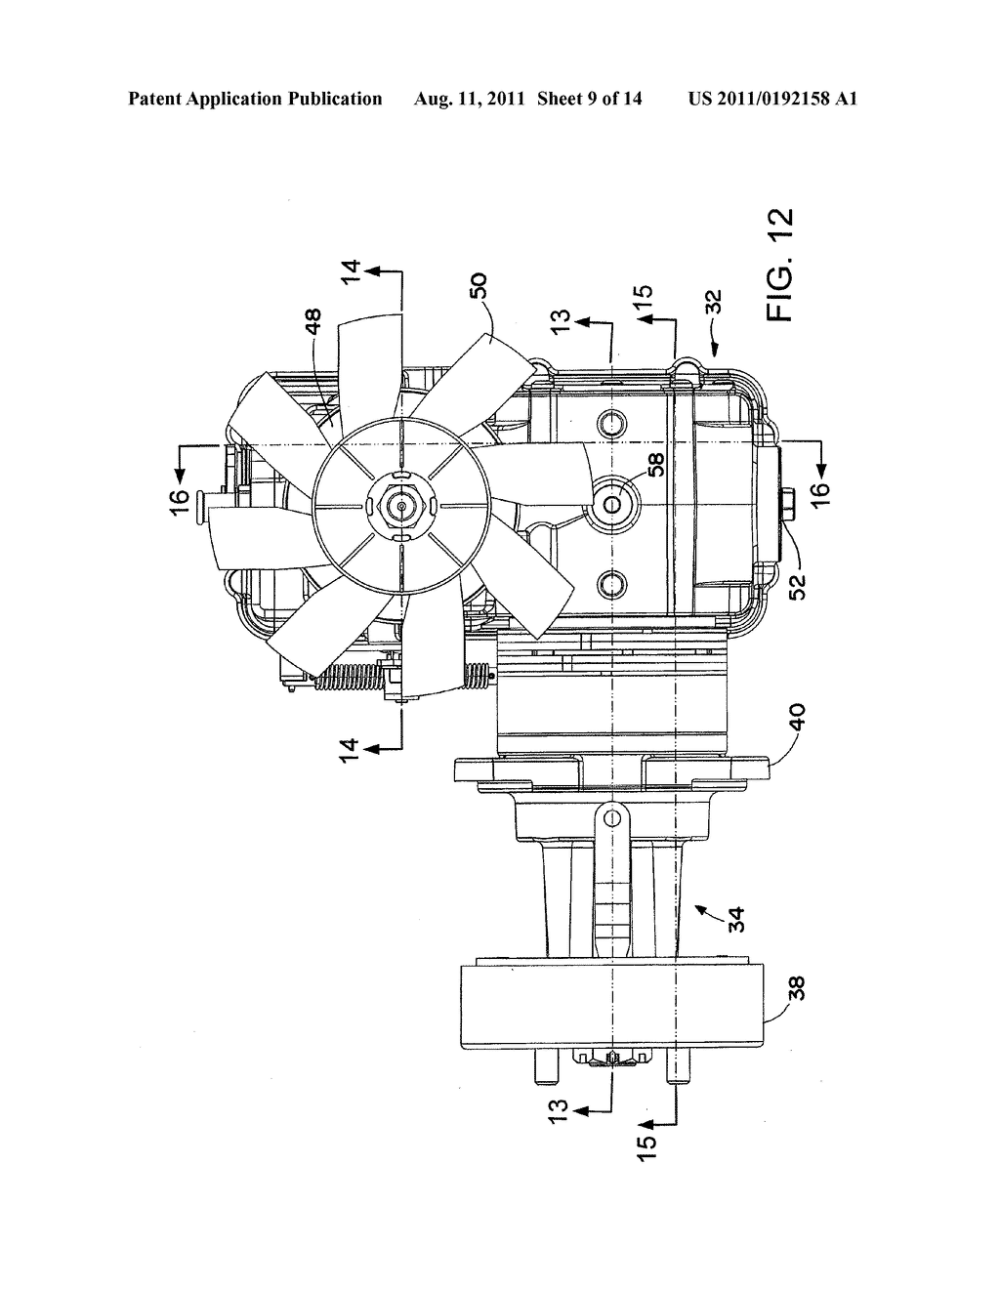 medium resolution of integrated hydrostatic transmission diagram schematic and image 10 mtd yard machines parts diagram hydrostatic transmission diagram